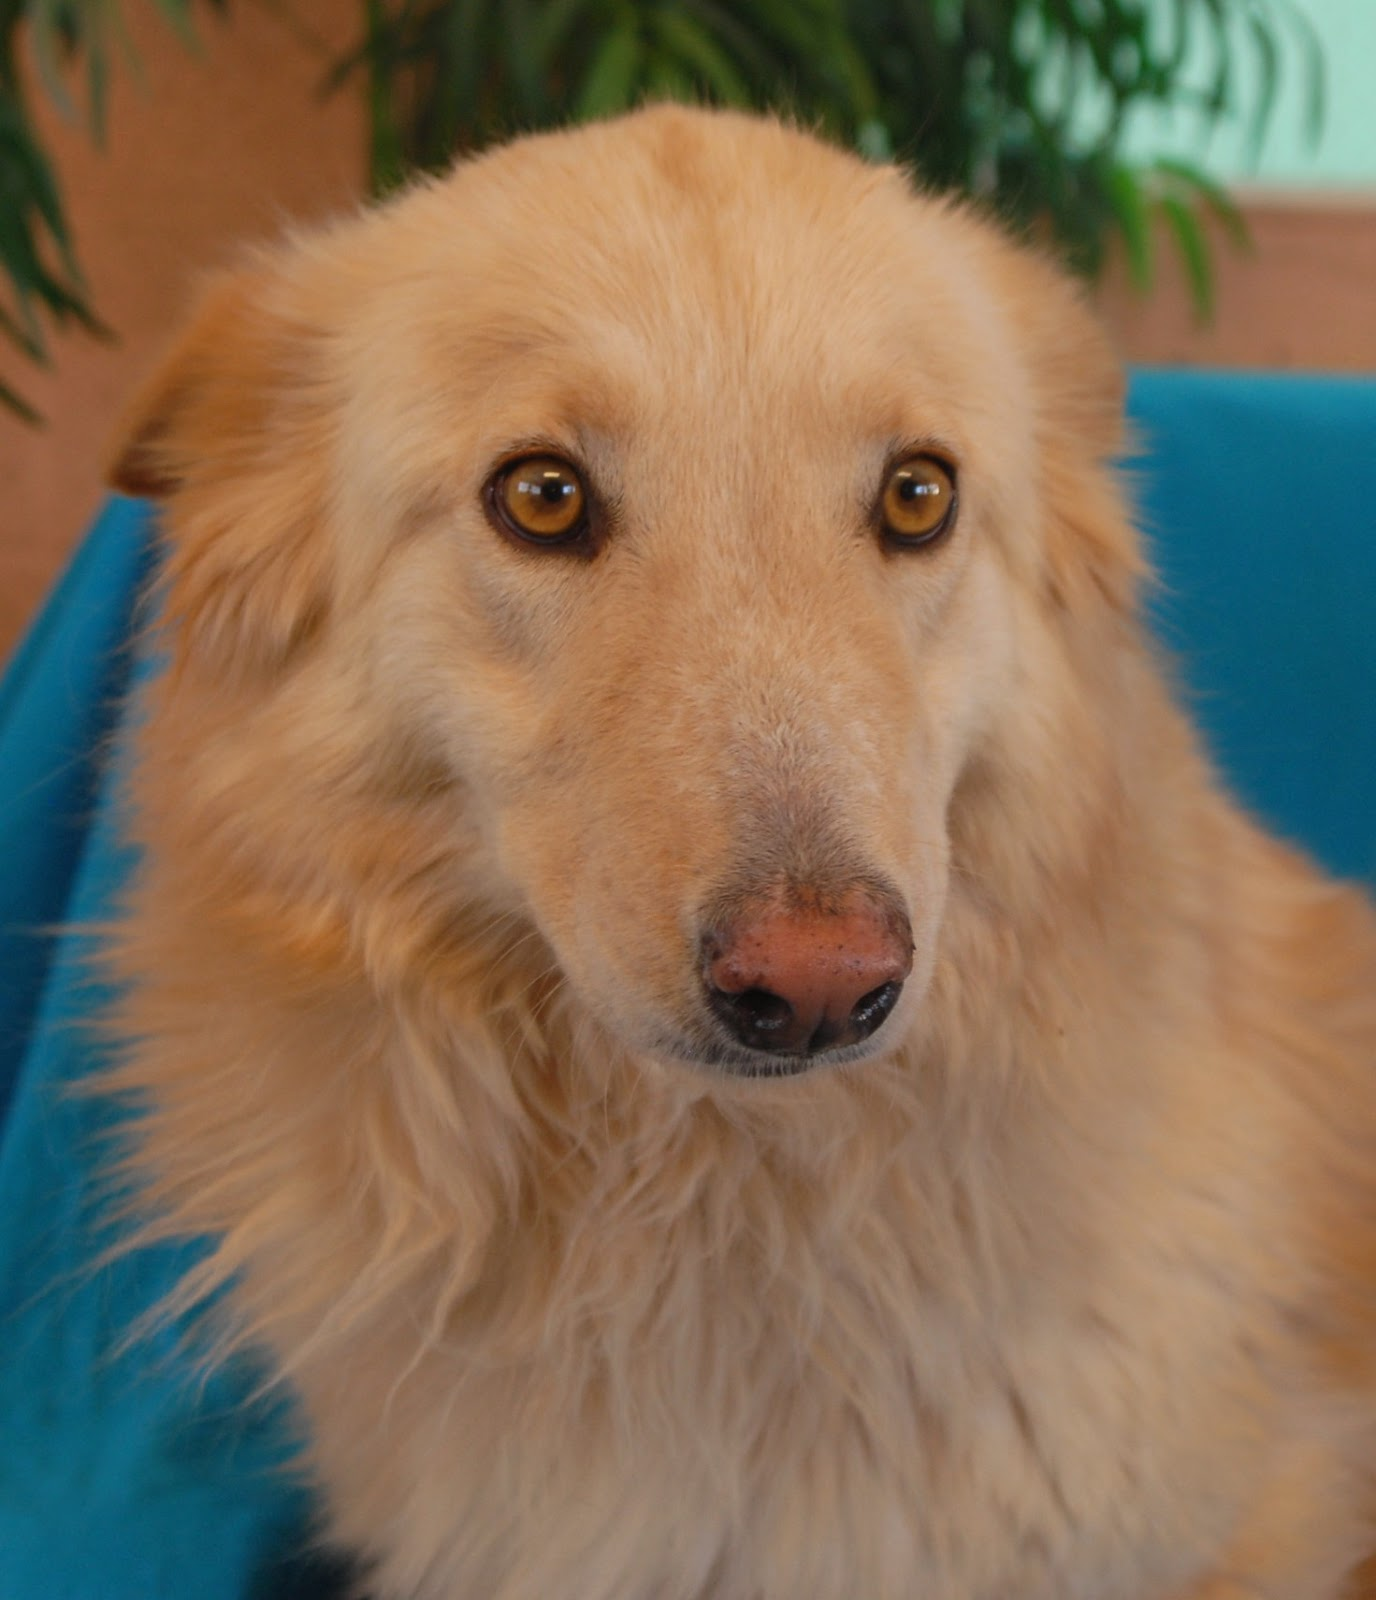 Gold Star, a Collie & Golden Retriever mix debuting for adoption.